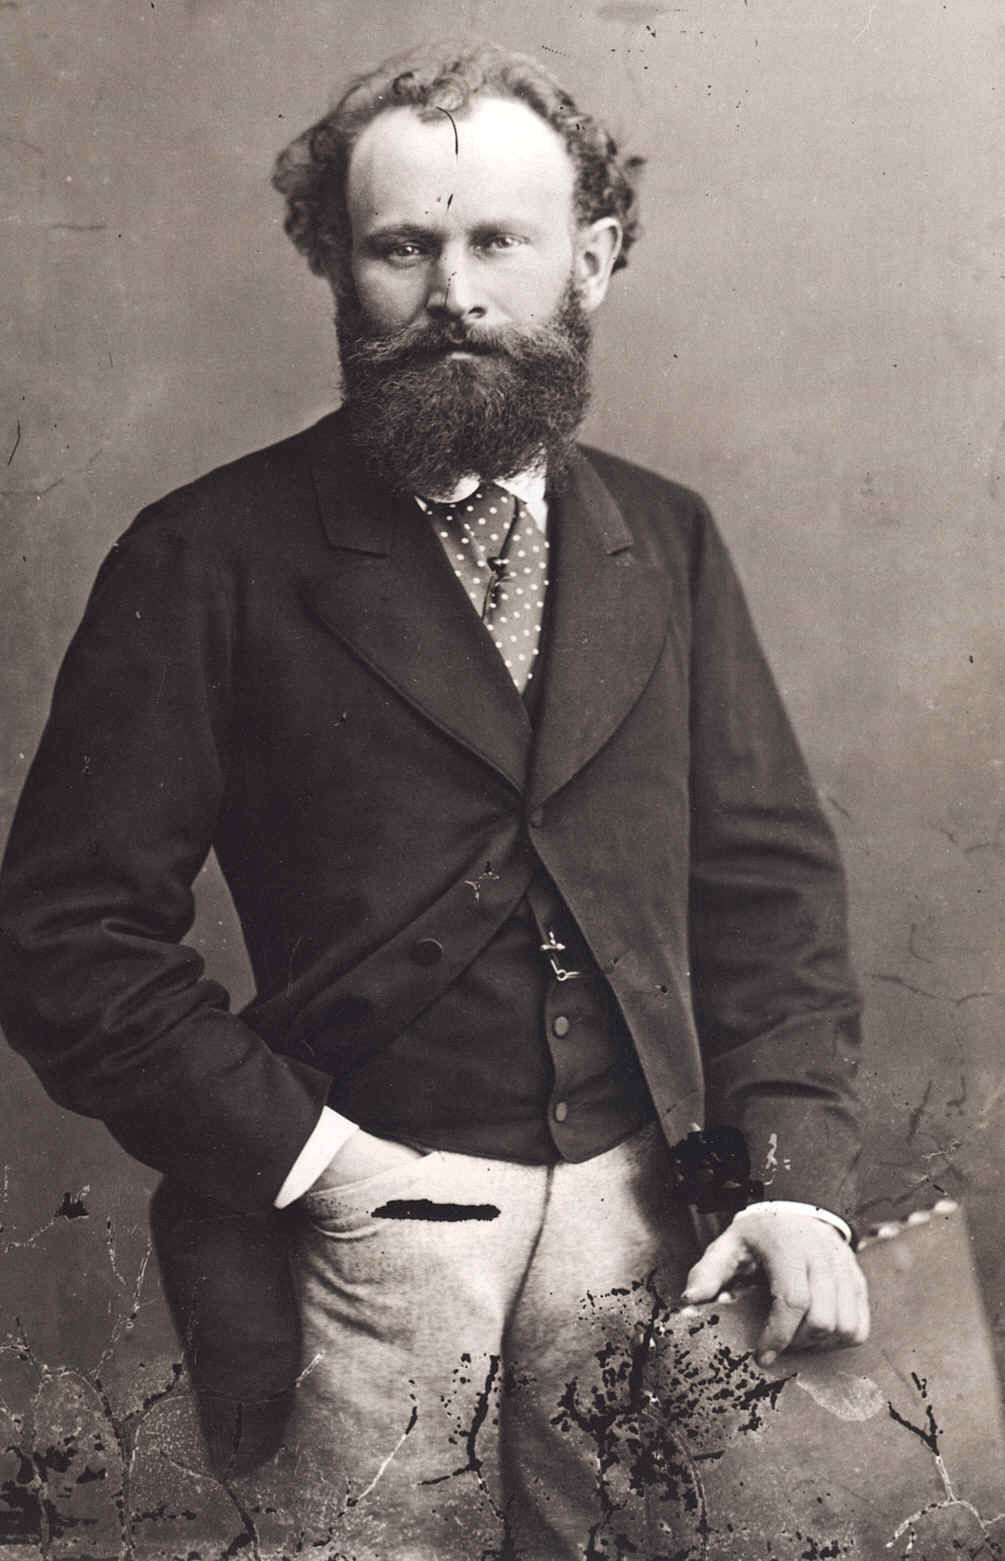 edouard manet Edouard manet was born on january 23, 1832, in paris while studying with thomas couture from 1850 to 1856, he drew at the académie suisse and copied the old masters at the musée du louvre after he left couture's studio, manet traveled extensively in europe, visiting belgium, the netherlands, germany, austria, and italy.